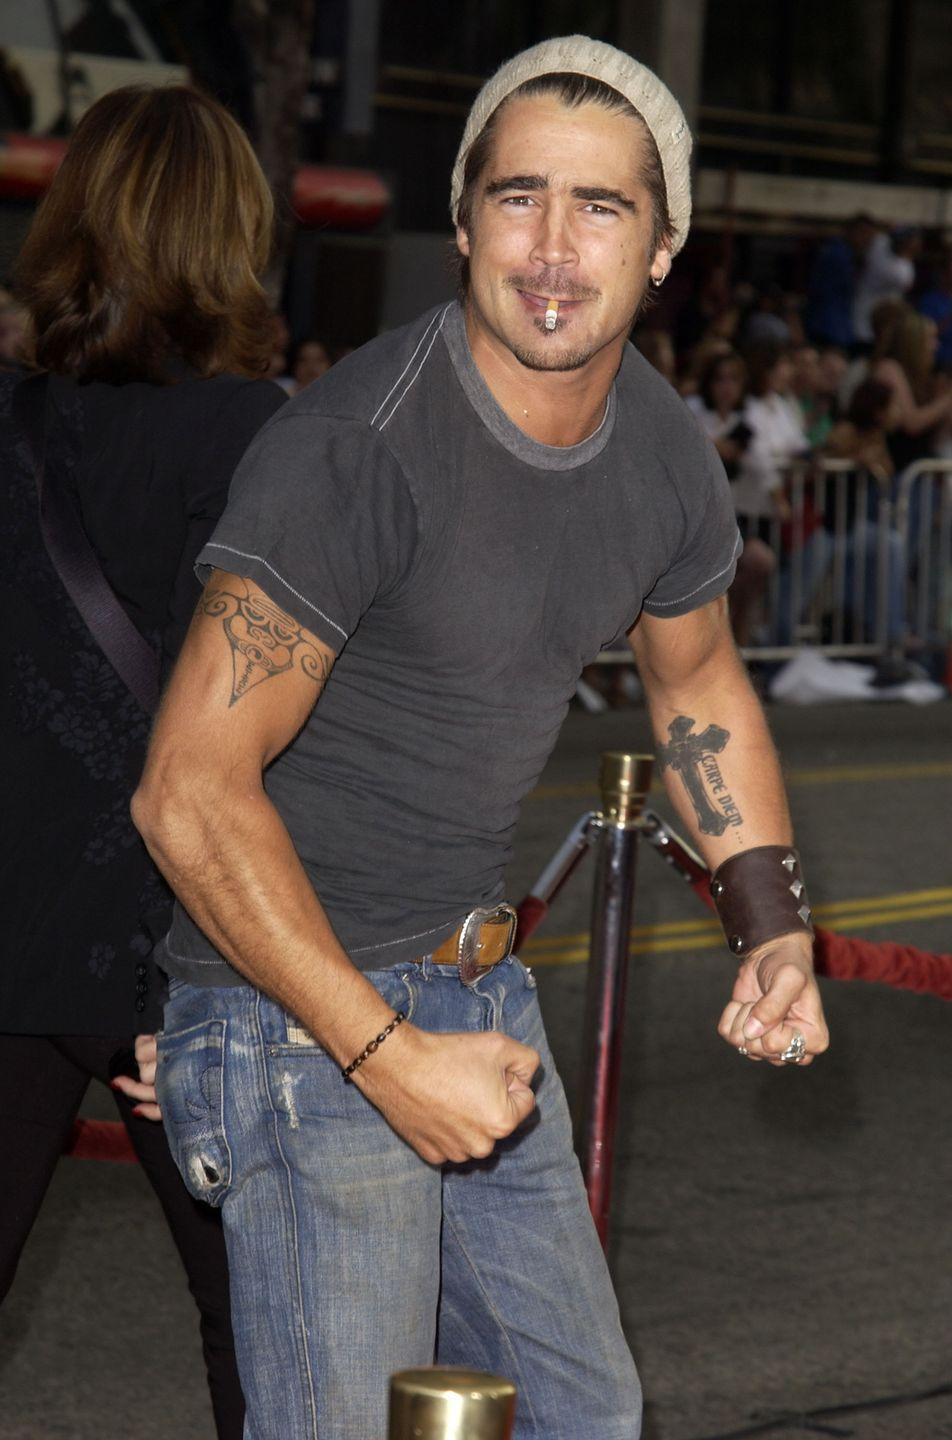 <p>The actor strikes a pose at the premiere of <em>Lara Croft: Tomb Raider</em> in 2003. To top off his bad boy image, Colin Farrell makes sure he shows off his arm tattoos with his pose. </p>